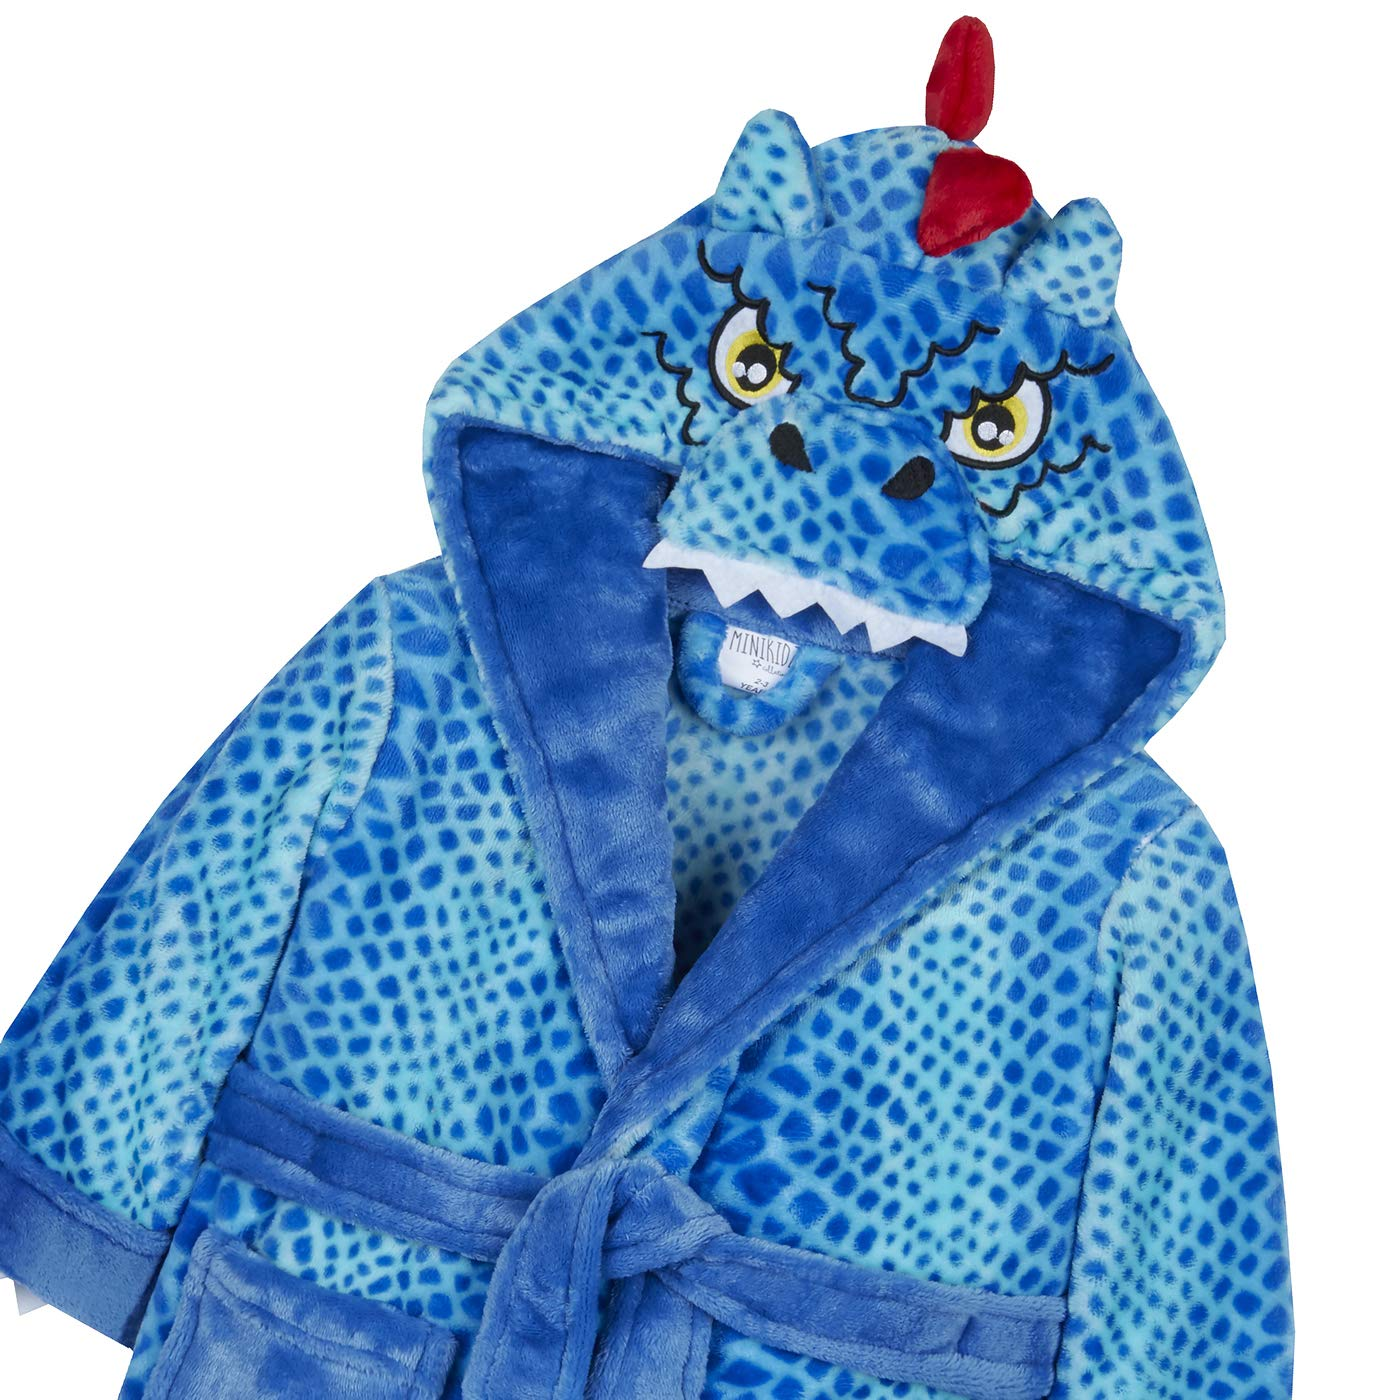 Dinosaur Unicorn Tiger Kids Animal Hooded Bath Robe Crocodile Giraffe Gorilla Full Sleeve Design with Tail Fleece Novelty Dressing Night Gown with Animal Character Hooded All Over with Ears